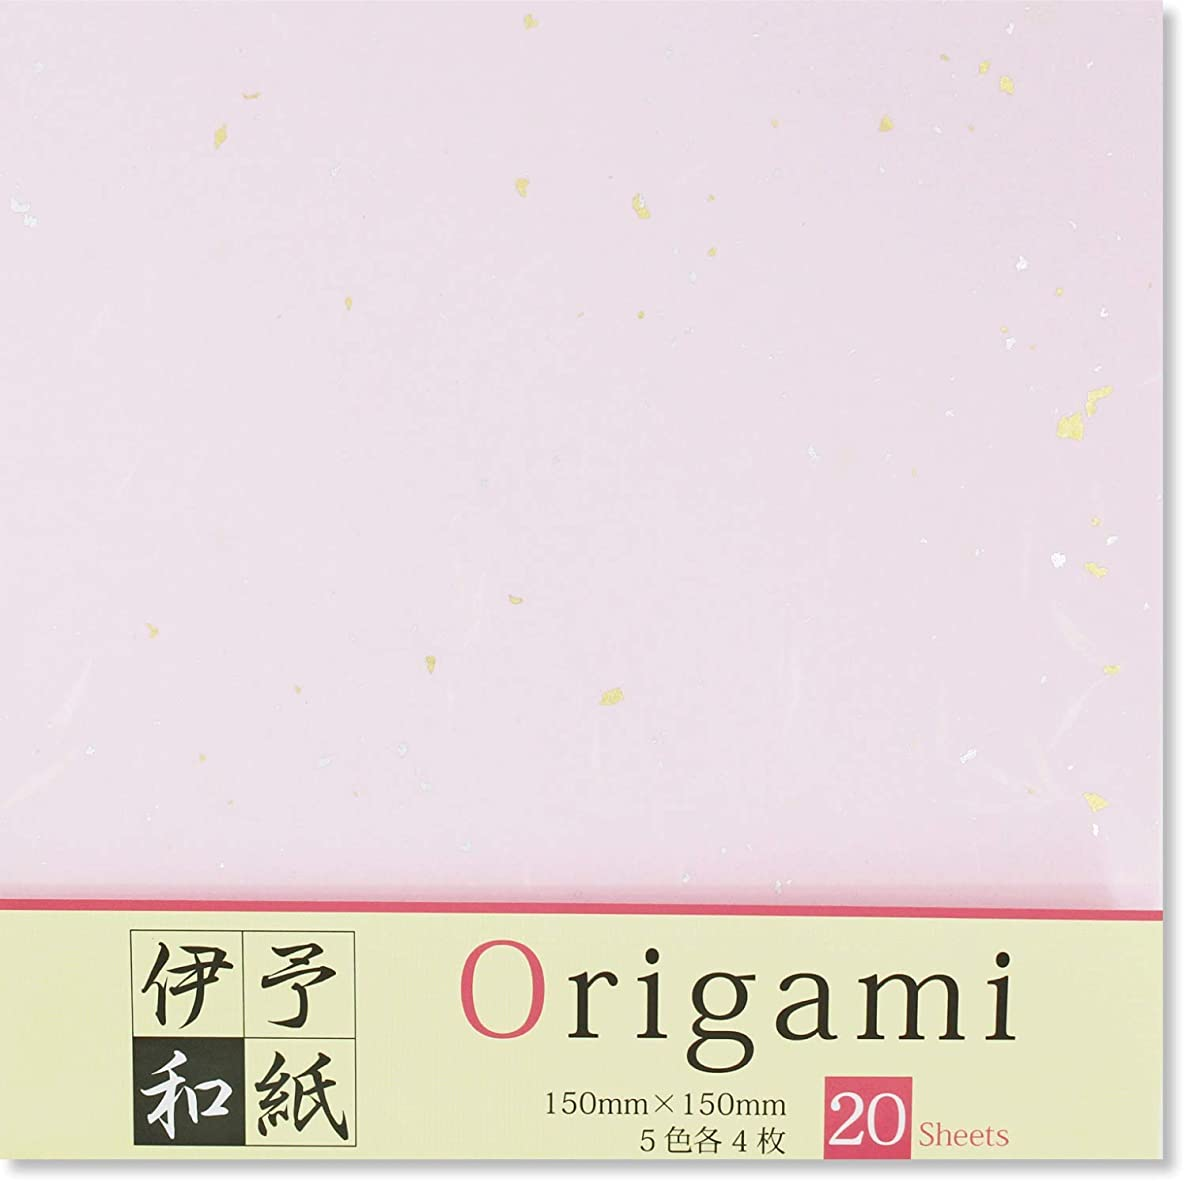 Washi Origami (Japanese Traditional Paper), 4 Colors, Premium Quality, Made in The Iyo Region of Japan, 6-inch Square (Sakura Mix)